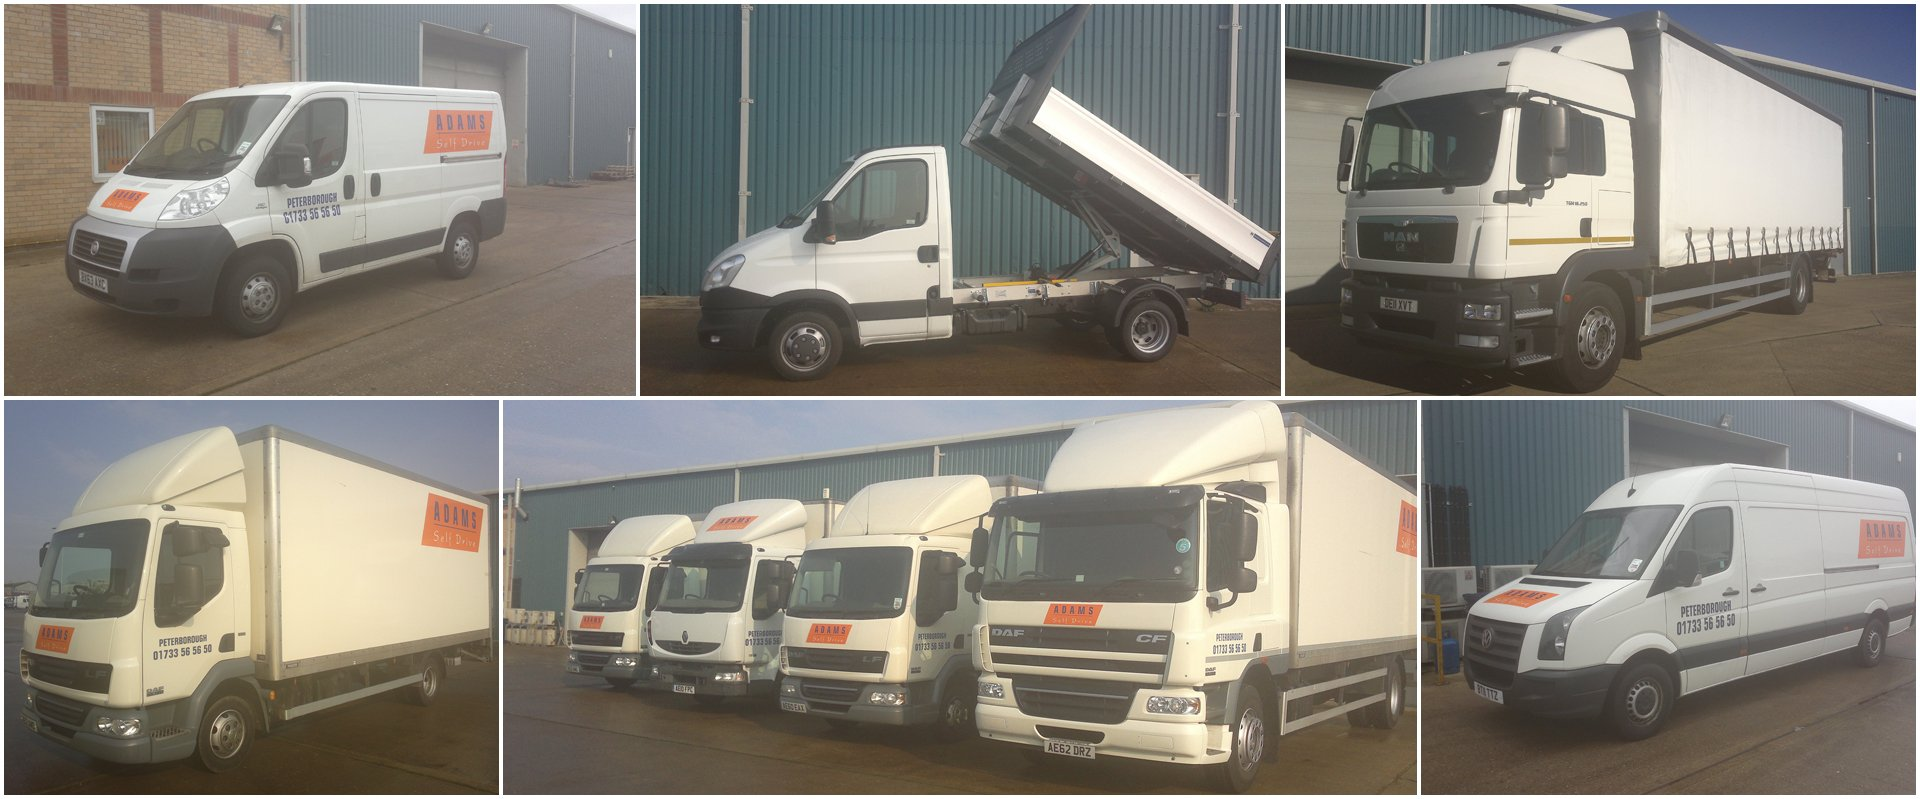 Commercial vehicles for hire